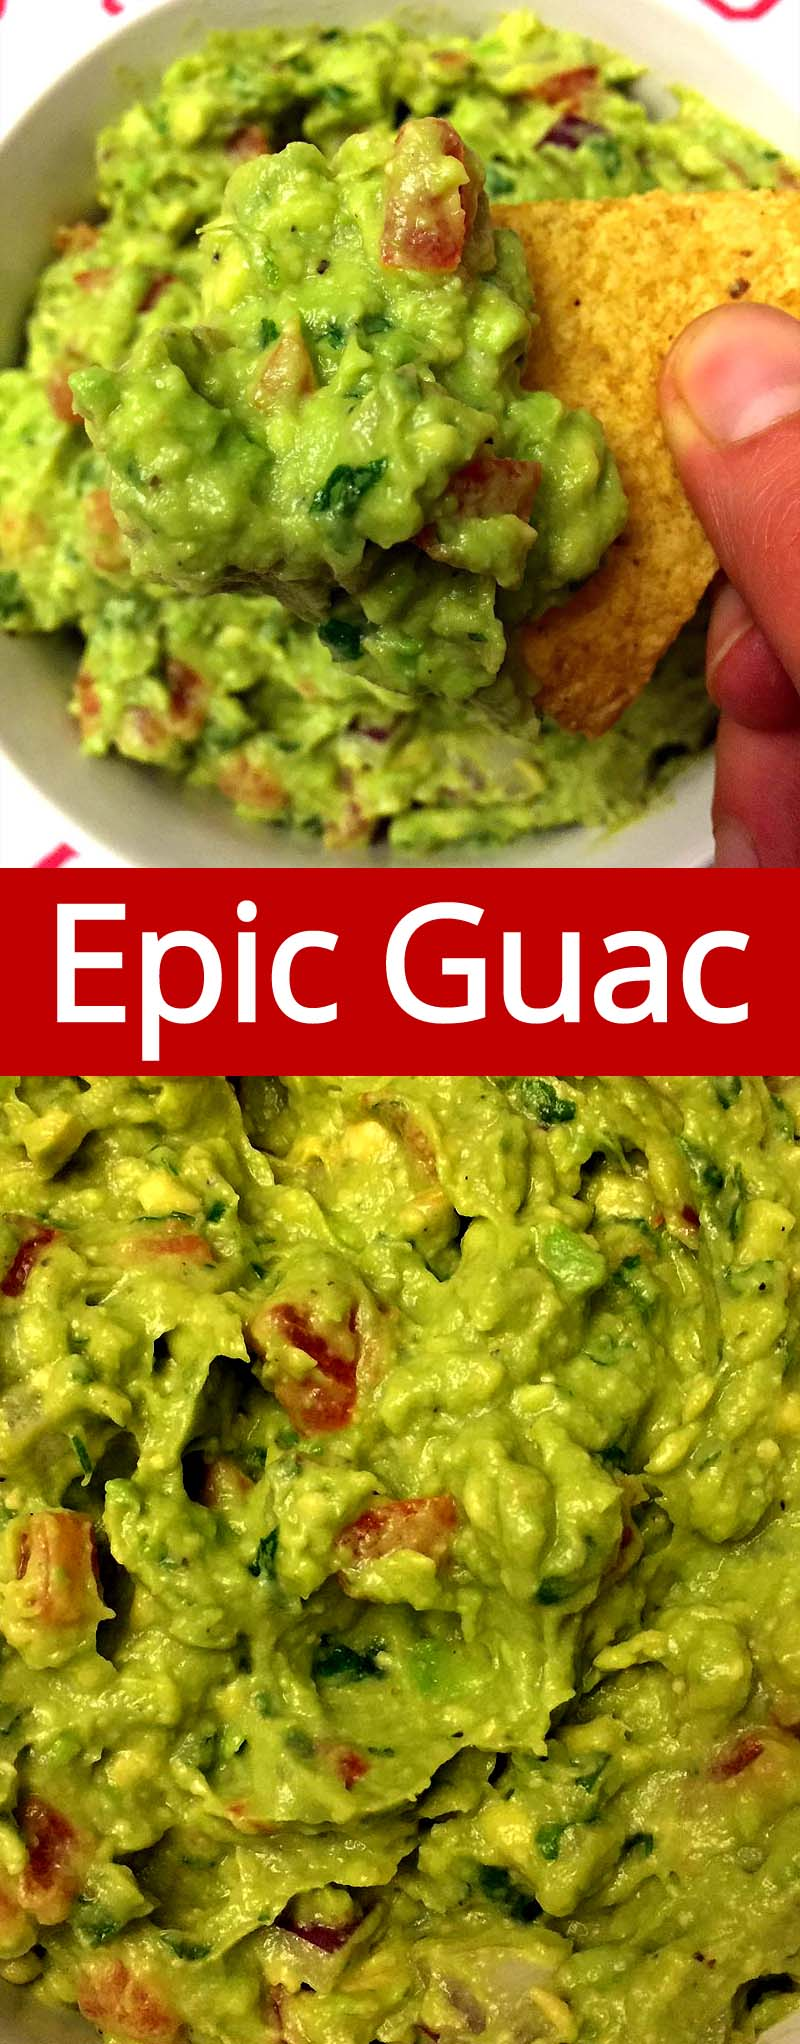 This is the best guacamole recipe ever! This easy homemade guacamole rivals the one they serve at a Mexican restaurant! I'll never make guacamole any other way!